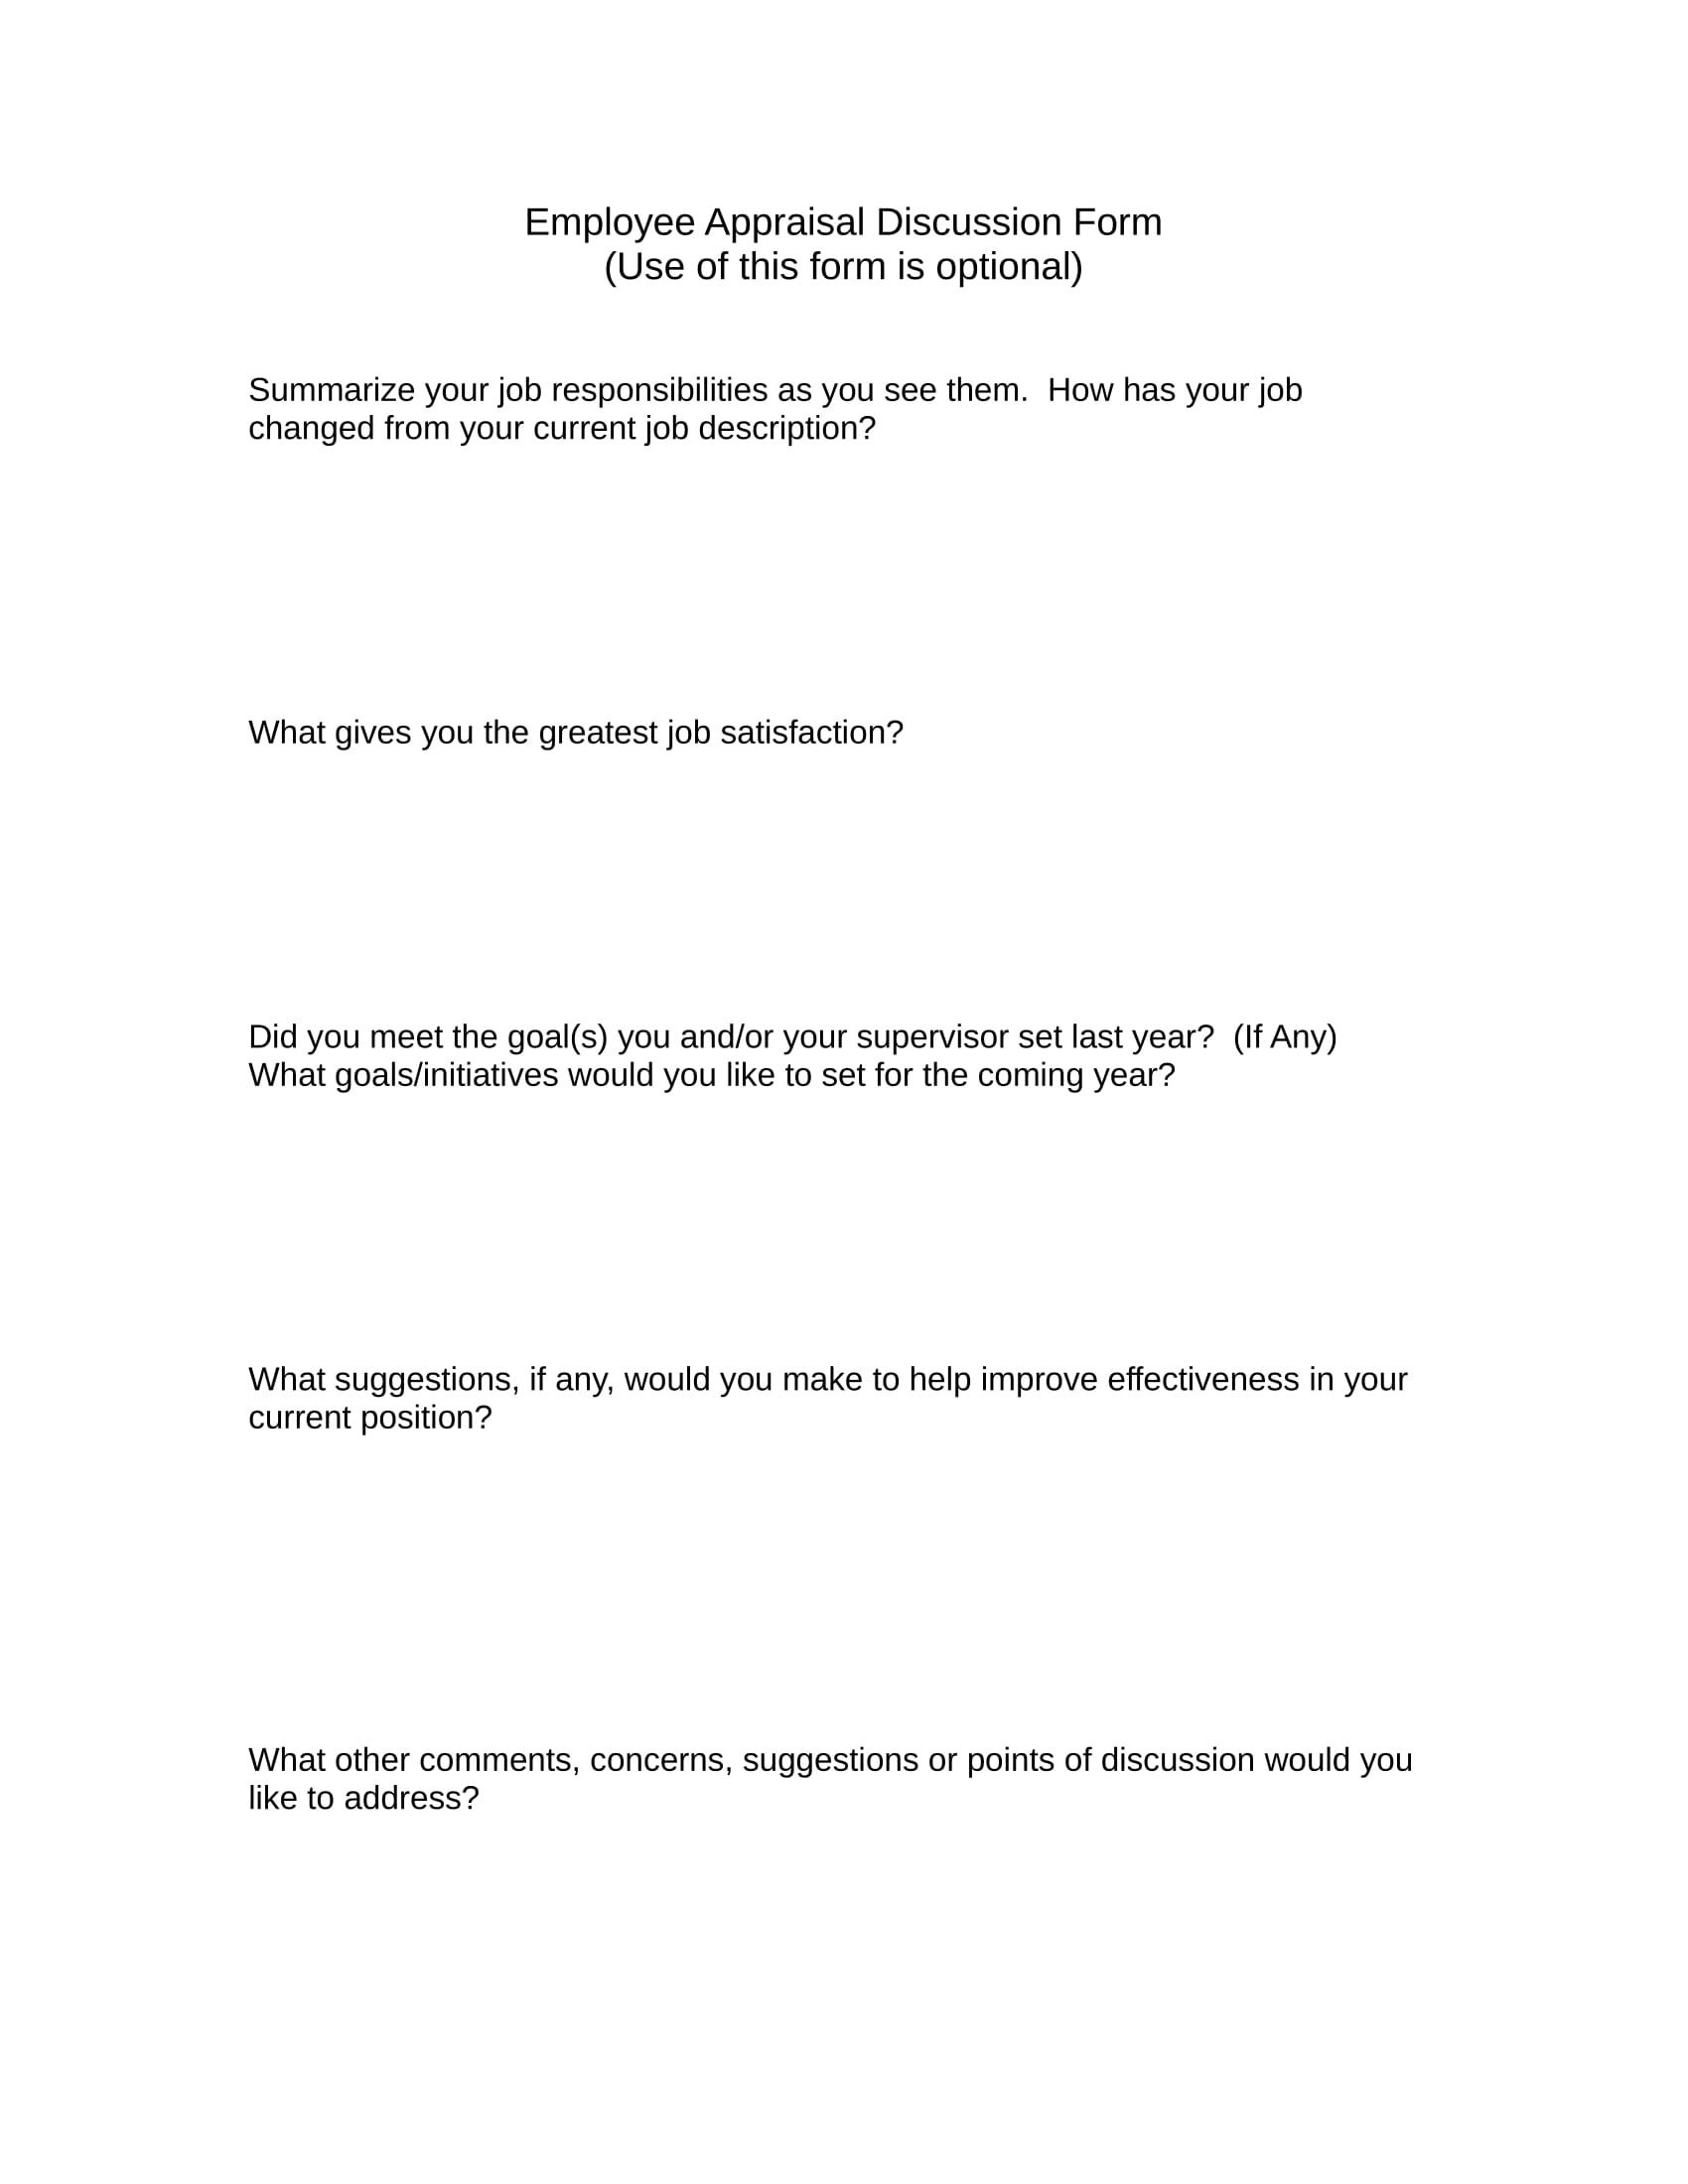 employee appraisal discussion form 1